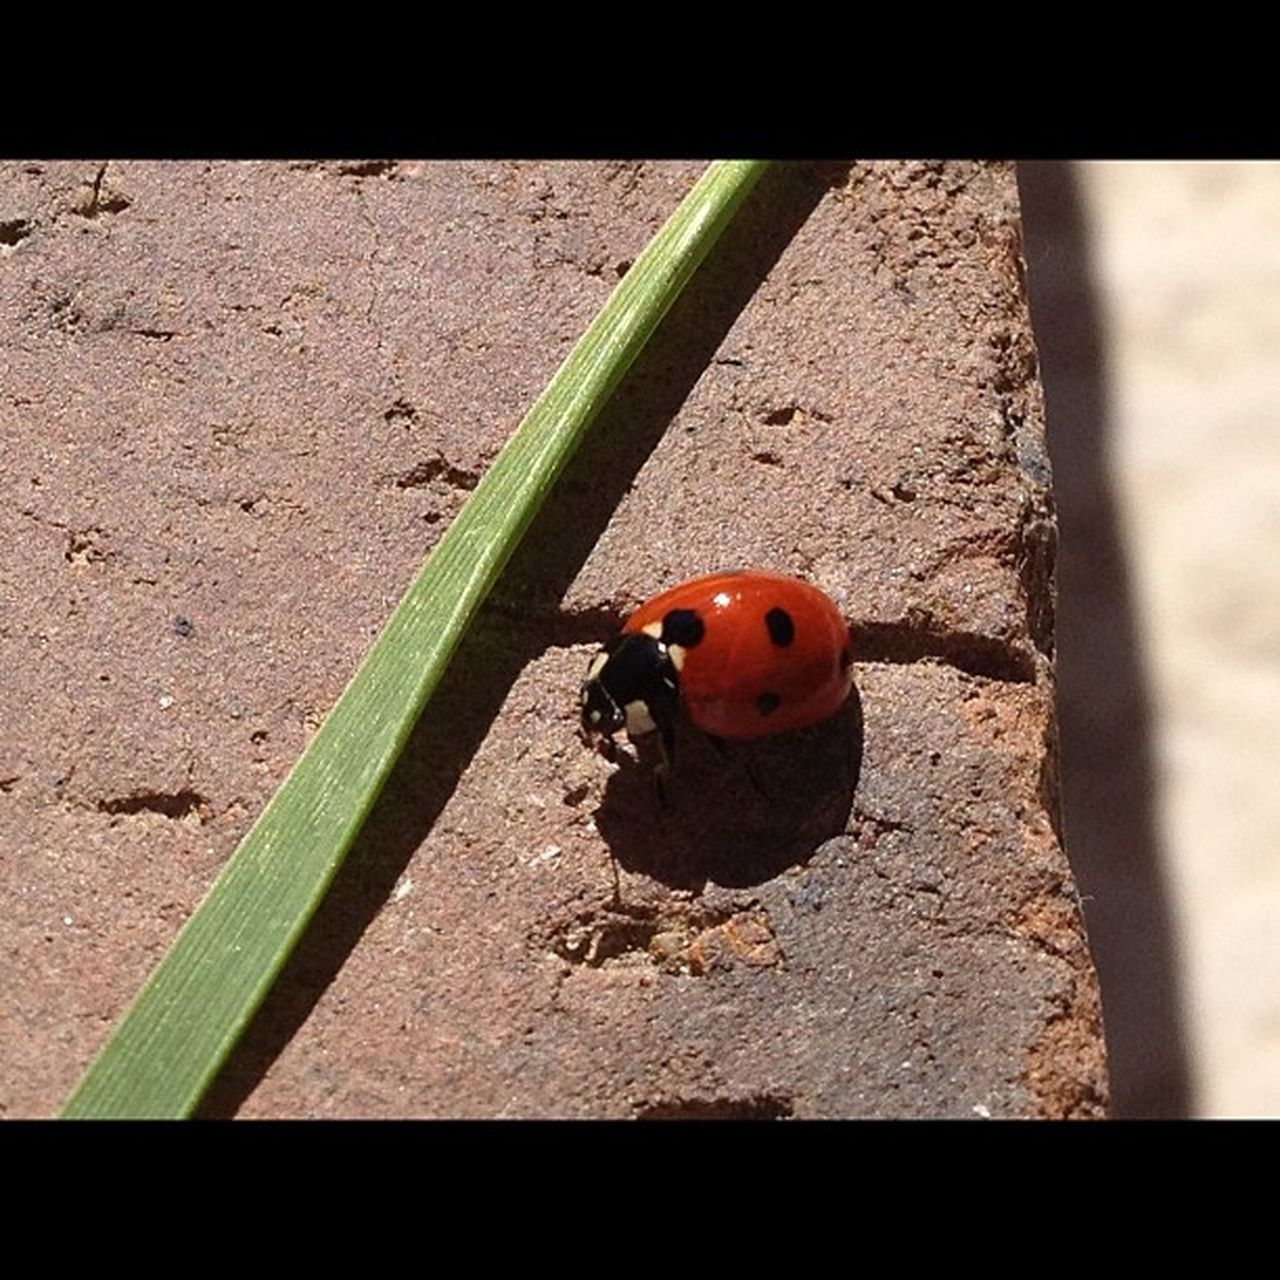 day, no people, animals in the wild, wildlife, ladybug, one animal, animal themes, insect, tiny, outdoors, close-up, nature